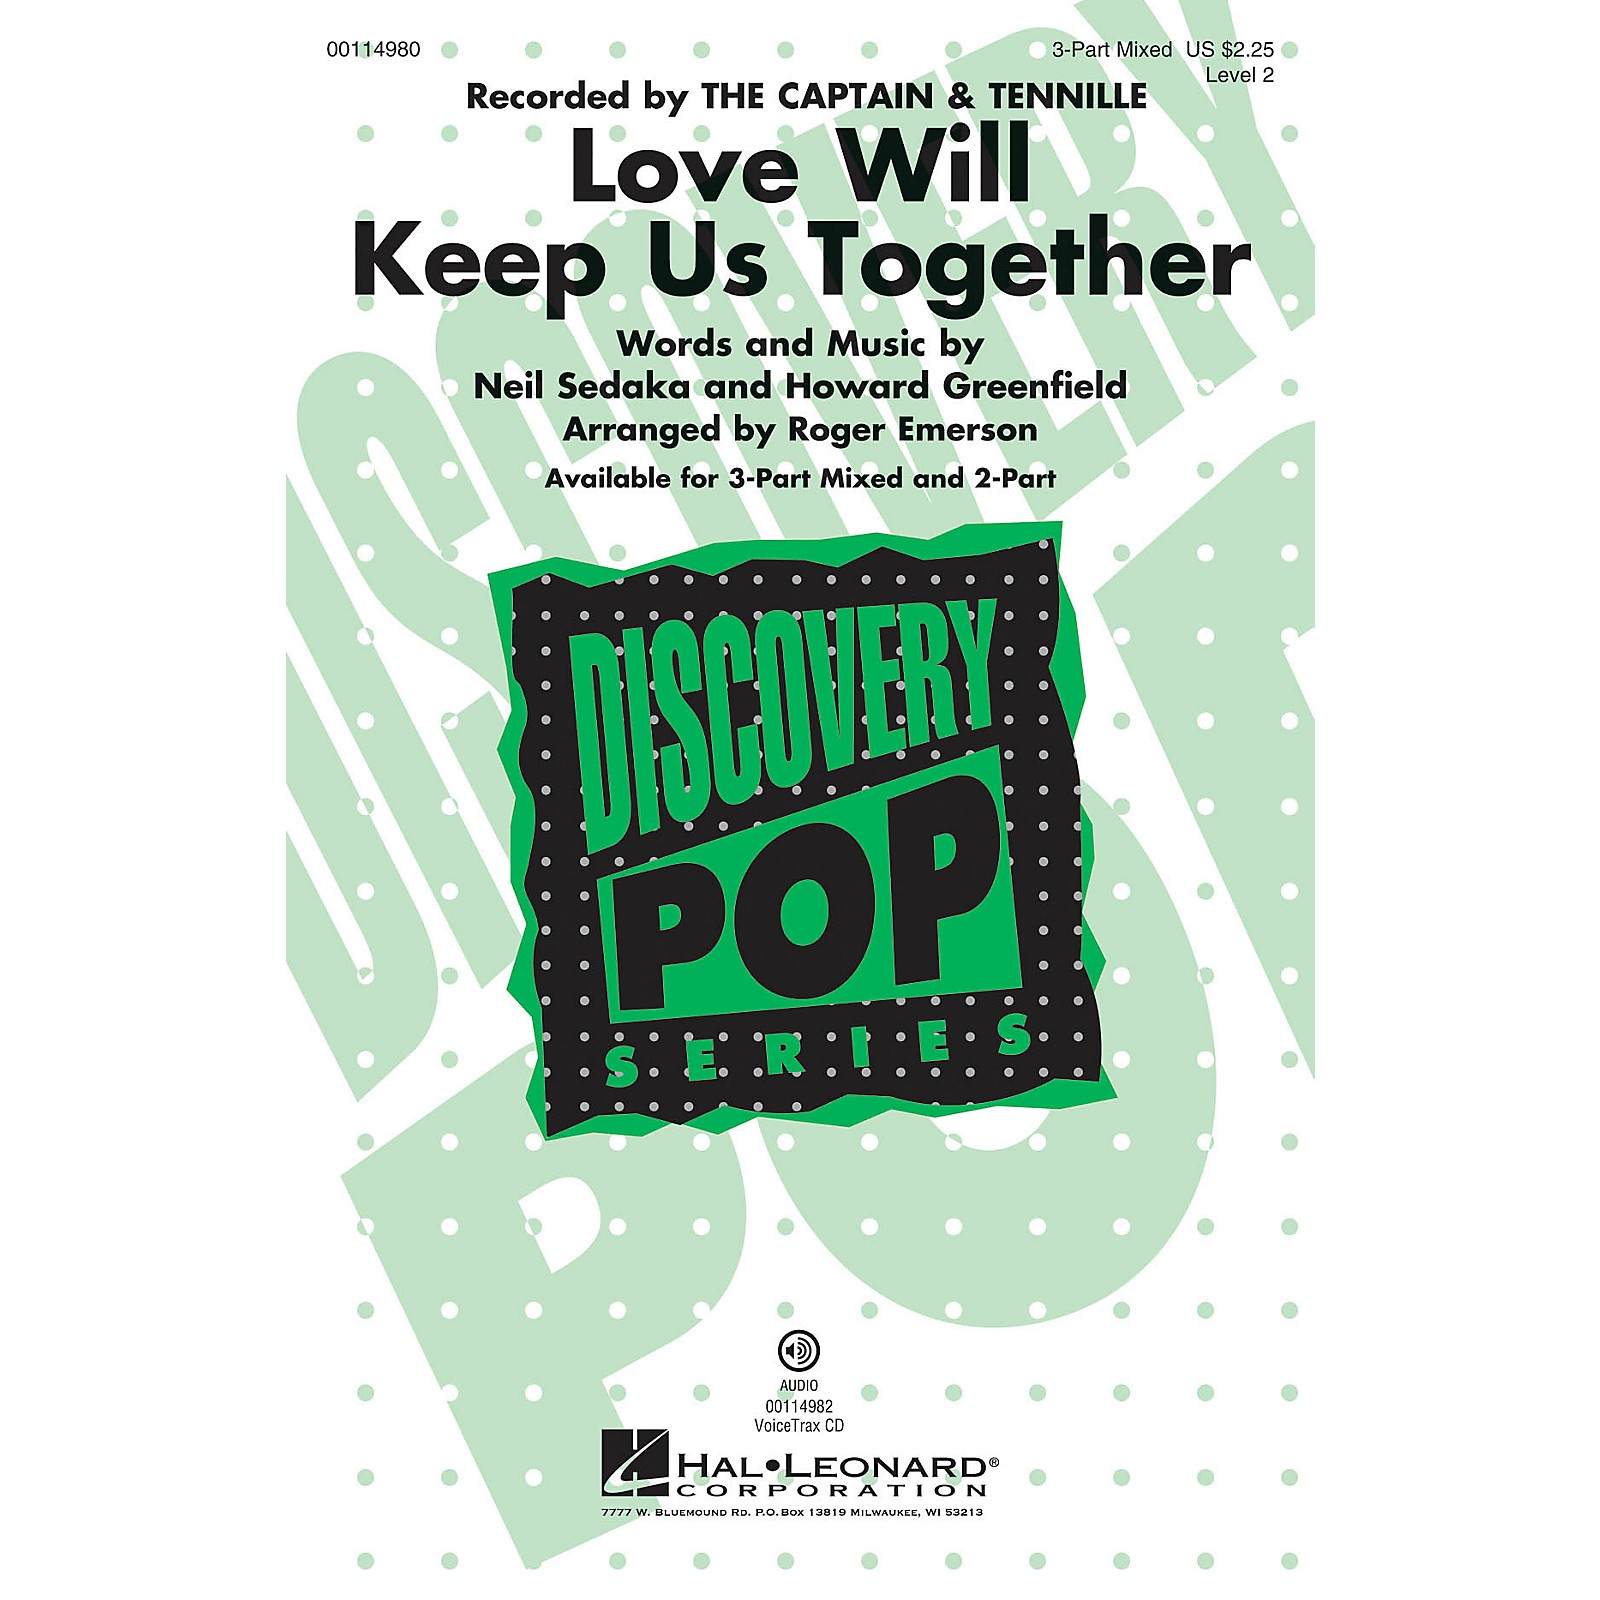 Hal Leonard Love Will Keep Us Together 3-Part Mixed by The Captain & Tennille arranged by Roger Emerson